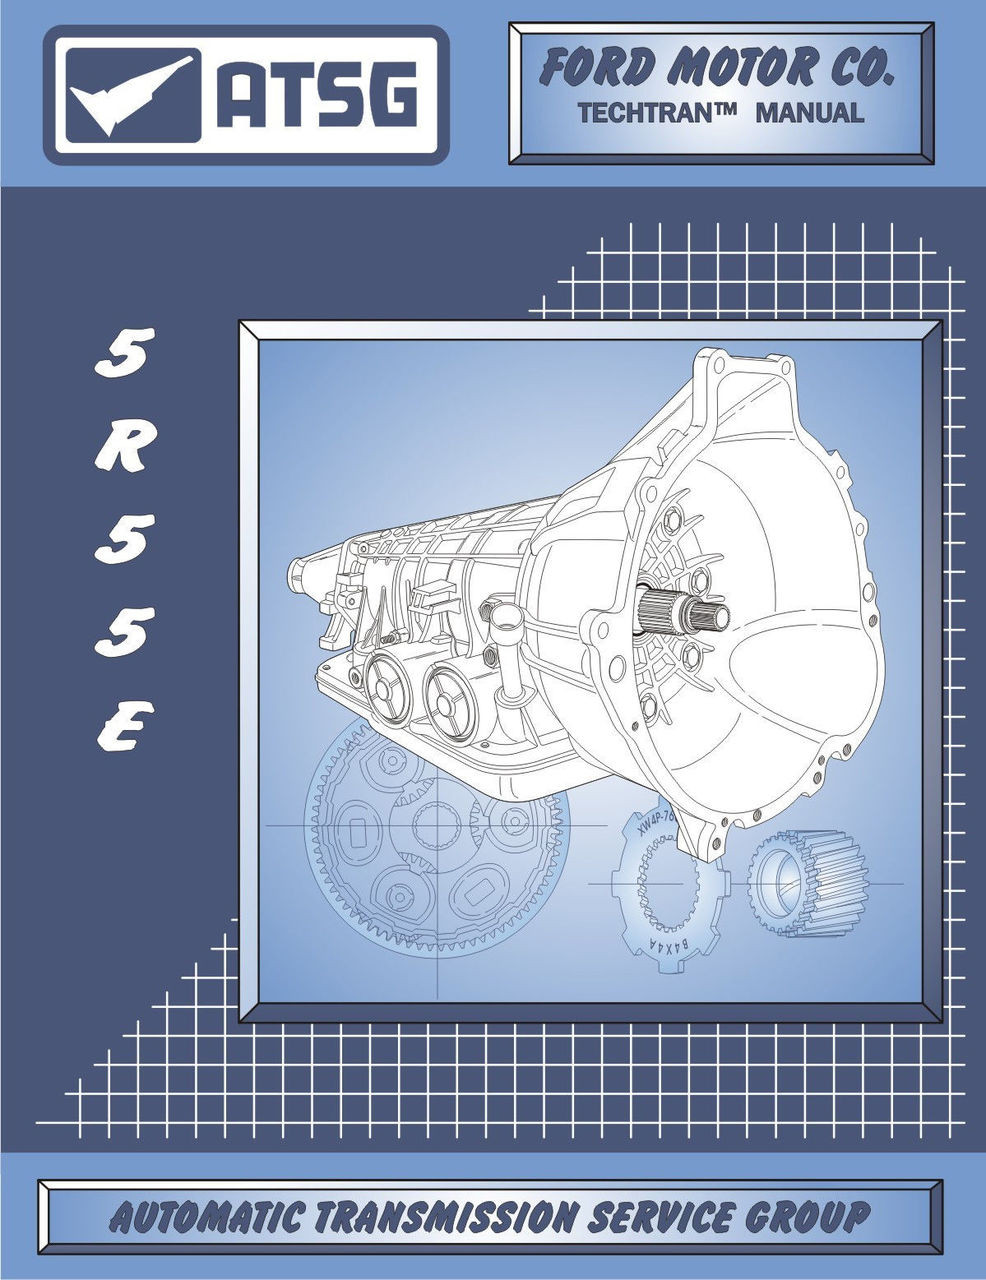 Astonishing Atsg Tech Manual 5R44E 5R55E A4Lde Ford Mercury Mazda 1997 On Wiring Database Ittabxeroyuccorg